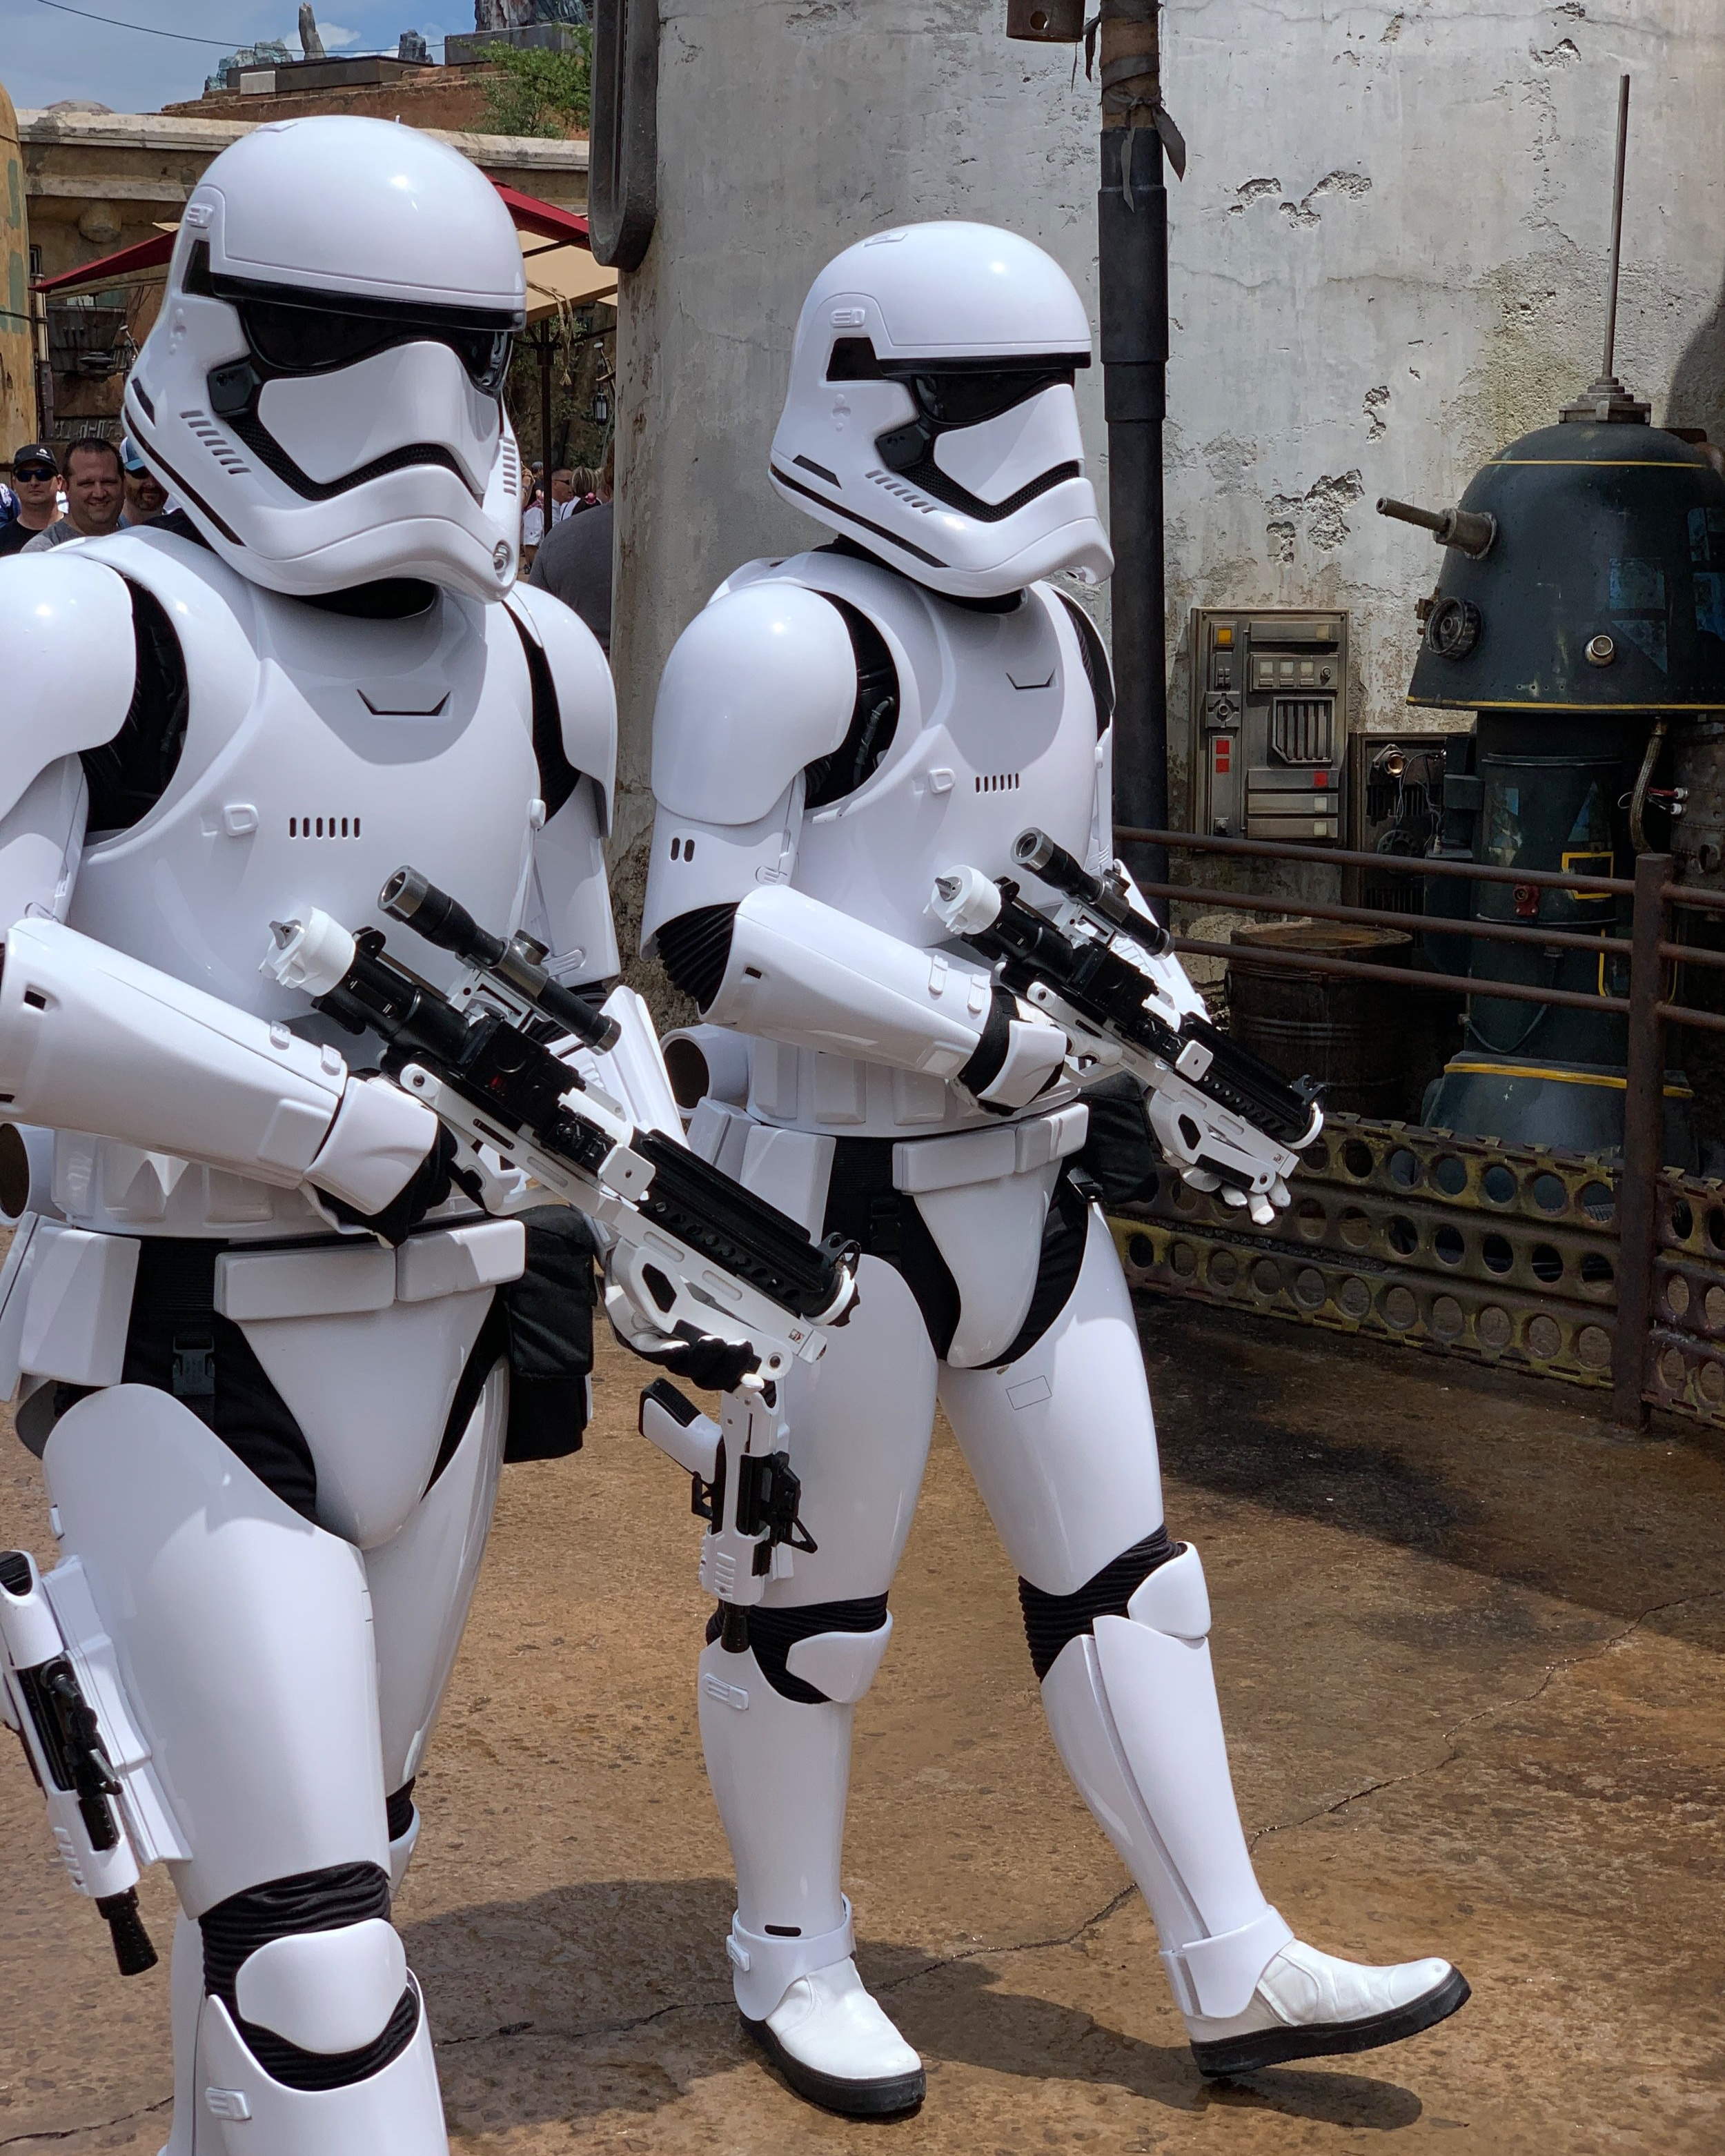 Roaming Storm Troopers were pretty much everywhere.